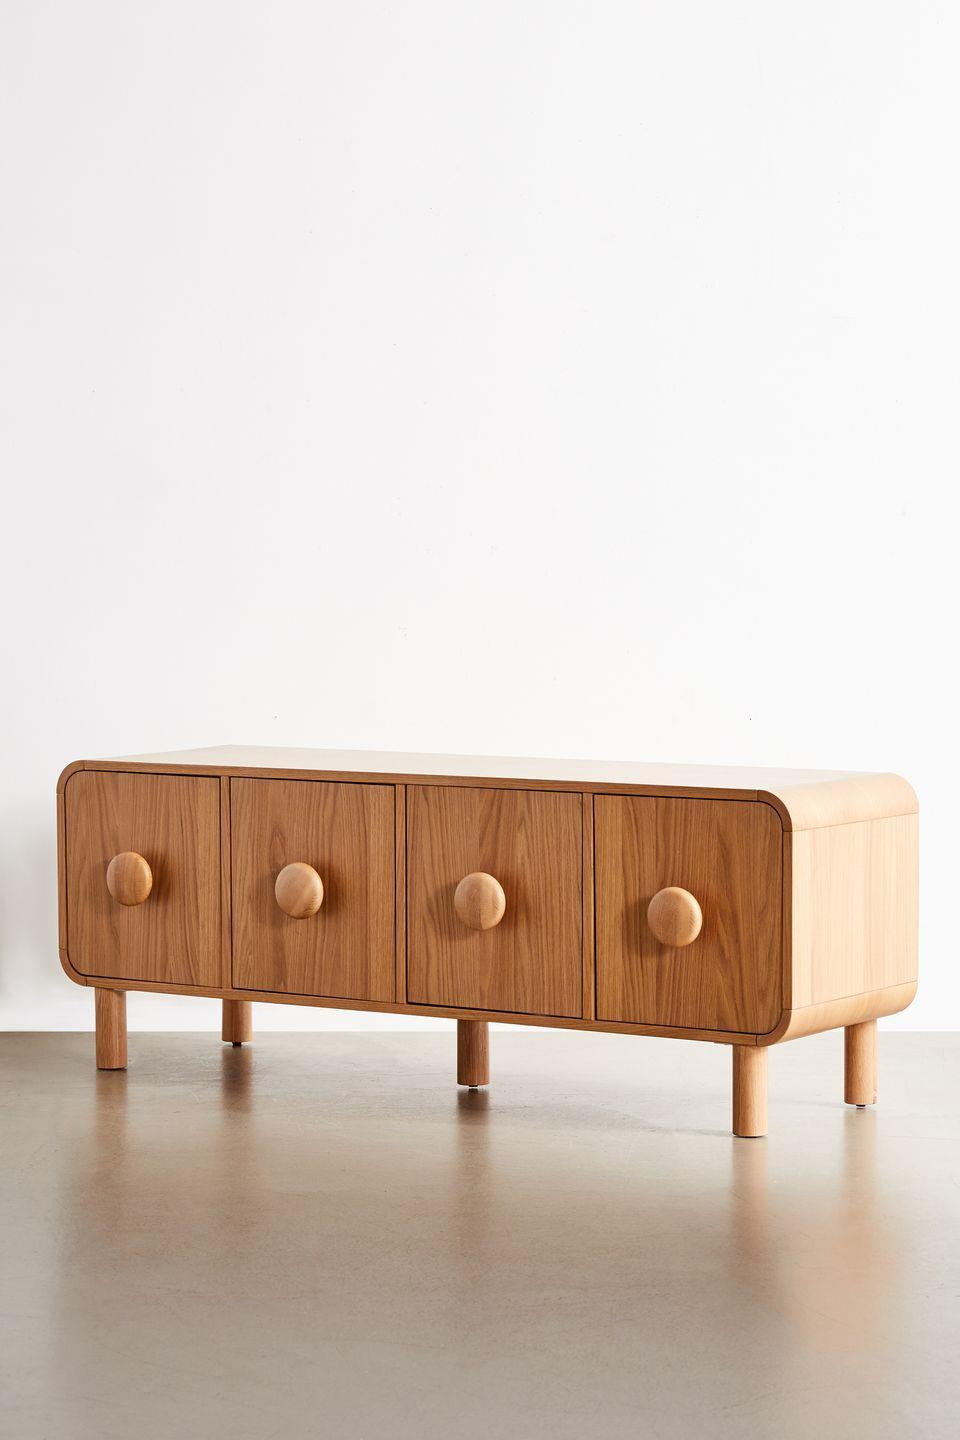 """<p>Oversized round handles and chunky legs give this mid-century-inspired oak veneer media cabinet an up-to-date look and feel. Inside, shelves provide space to house those unsightly black boxes, wires and hubs. £449, <a href=""""https://www.urbanoutfitters.com/en-gb/?ref=logo"""" rel=""""nofollow noopener"""" target=""""_blank"""" data-ylk=""""slk:urbanoutfitters.com"""" class=""""link rapid-noclick-resp"""">urbanoutfitters.com</a></p>"""